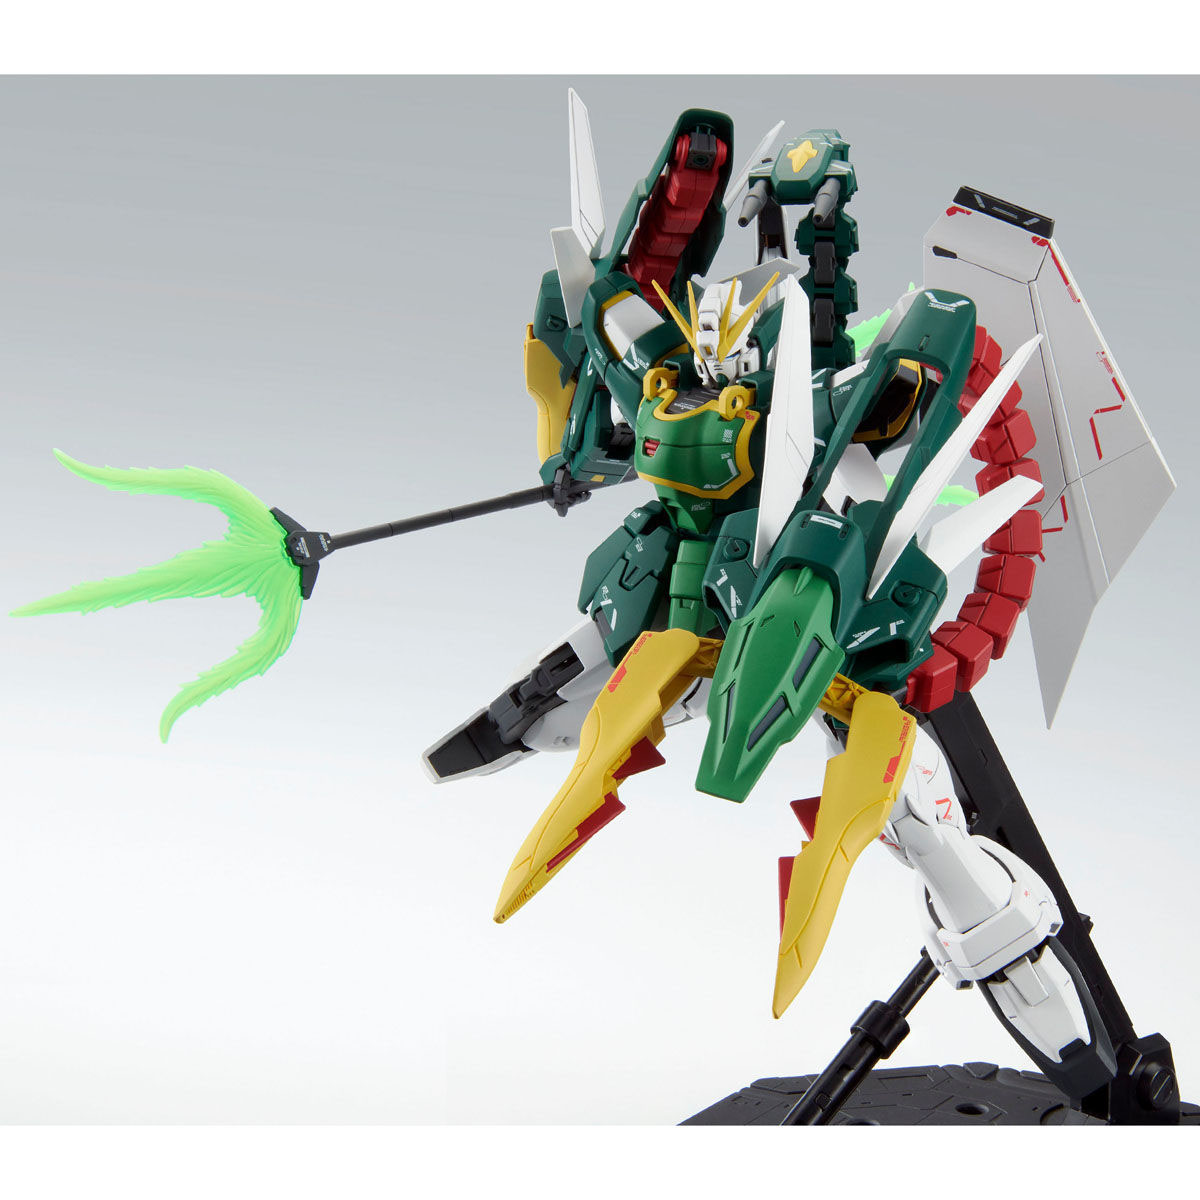 MG 1/100 EXPANSION PARTS SET for MOBILE SUIT GUNDAM W EW SERIES (The Glory of Losers Ver.) [2021年8月發送]